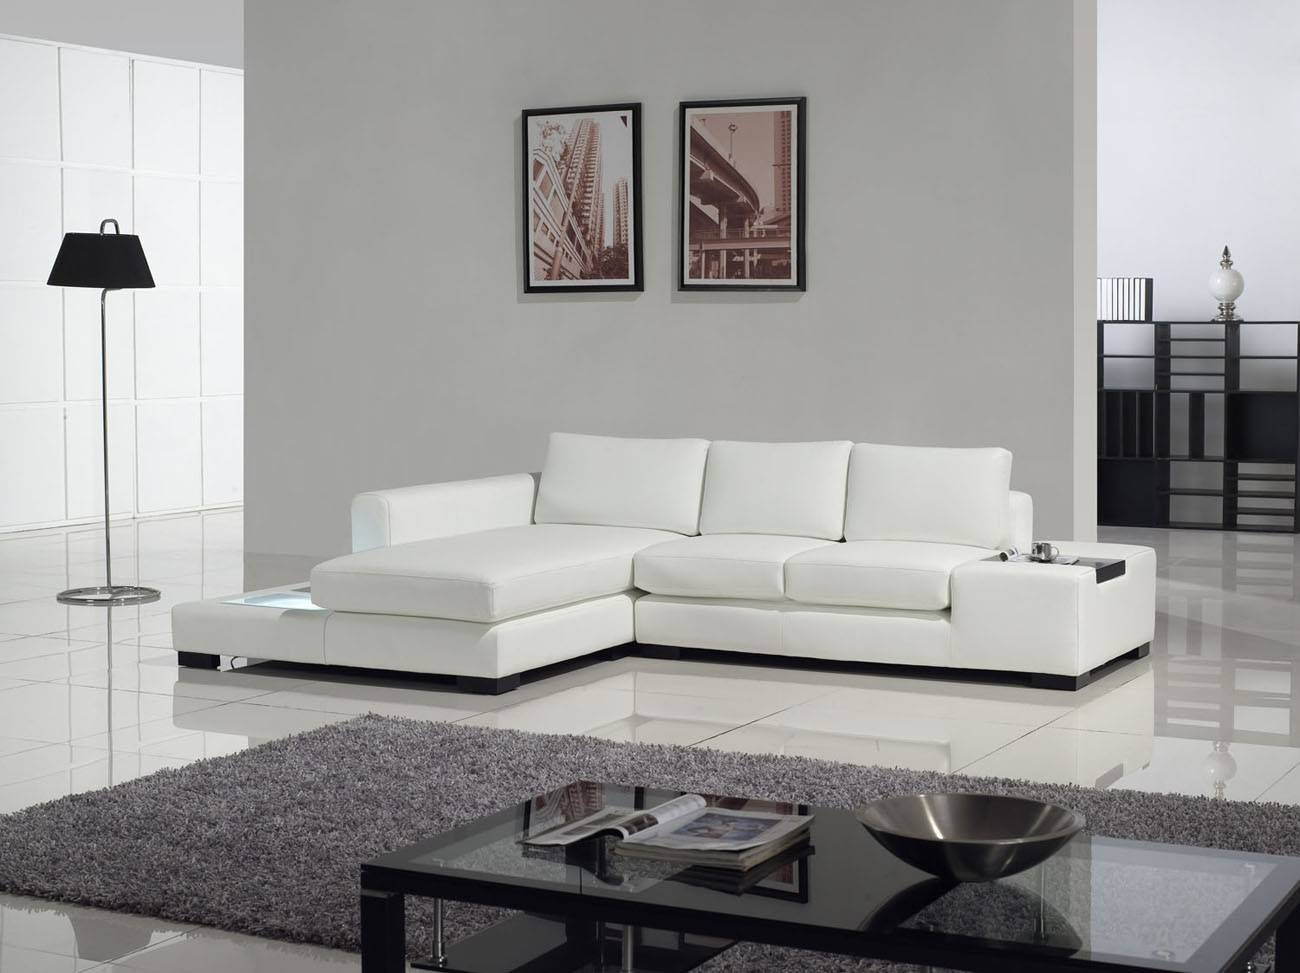 Tosh Furniture Modern White Compact Leather Sectional Sofa – Flap With Tosh Furniture Sectional Sofas (View 12 of 15)